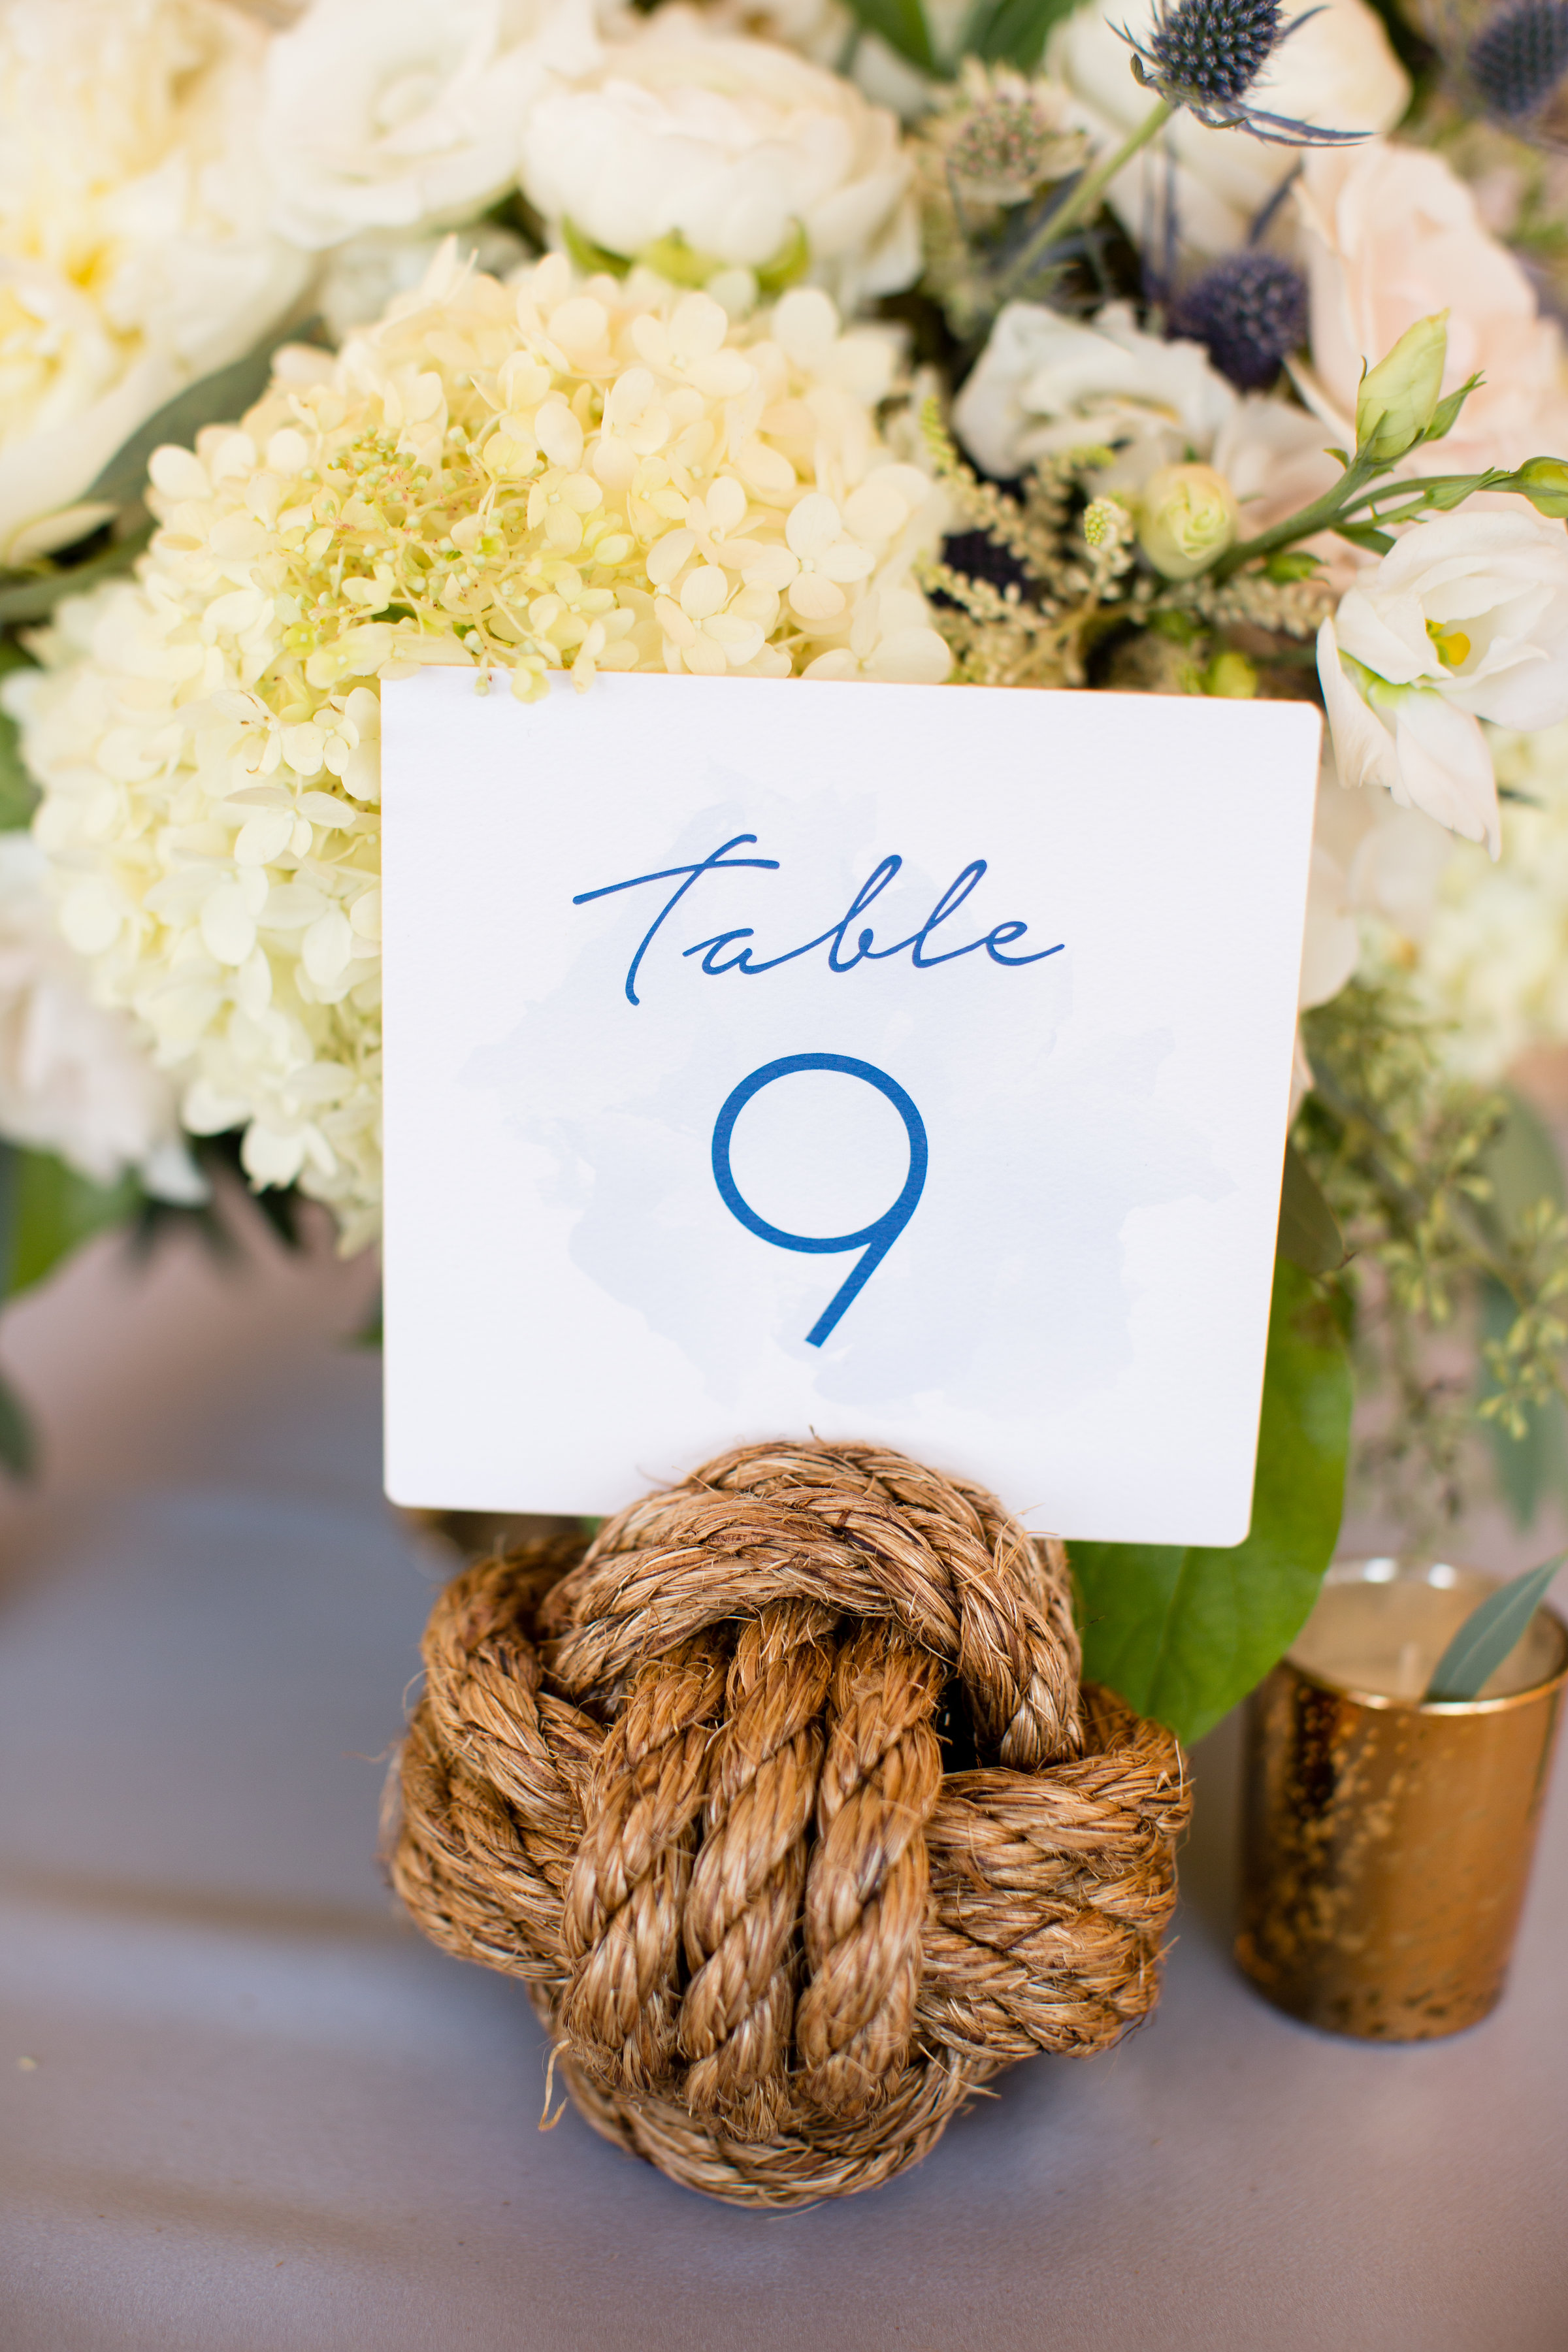 Nautical Rope Table Numbers at Wedding